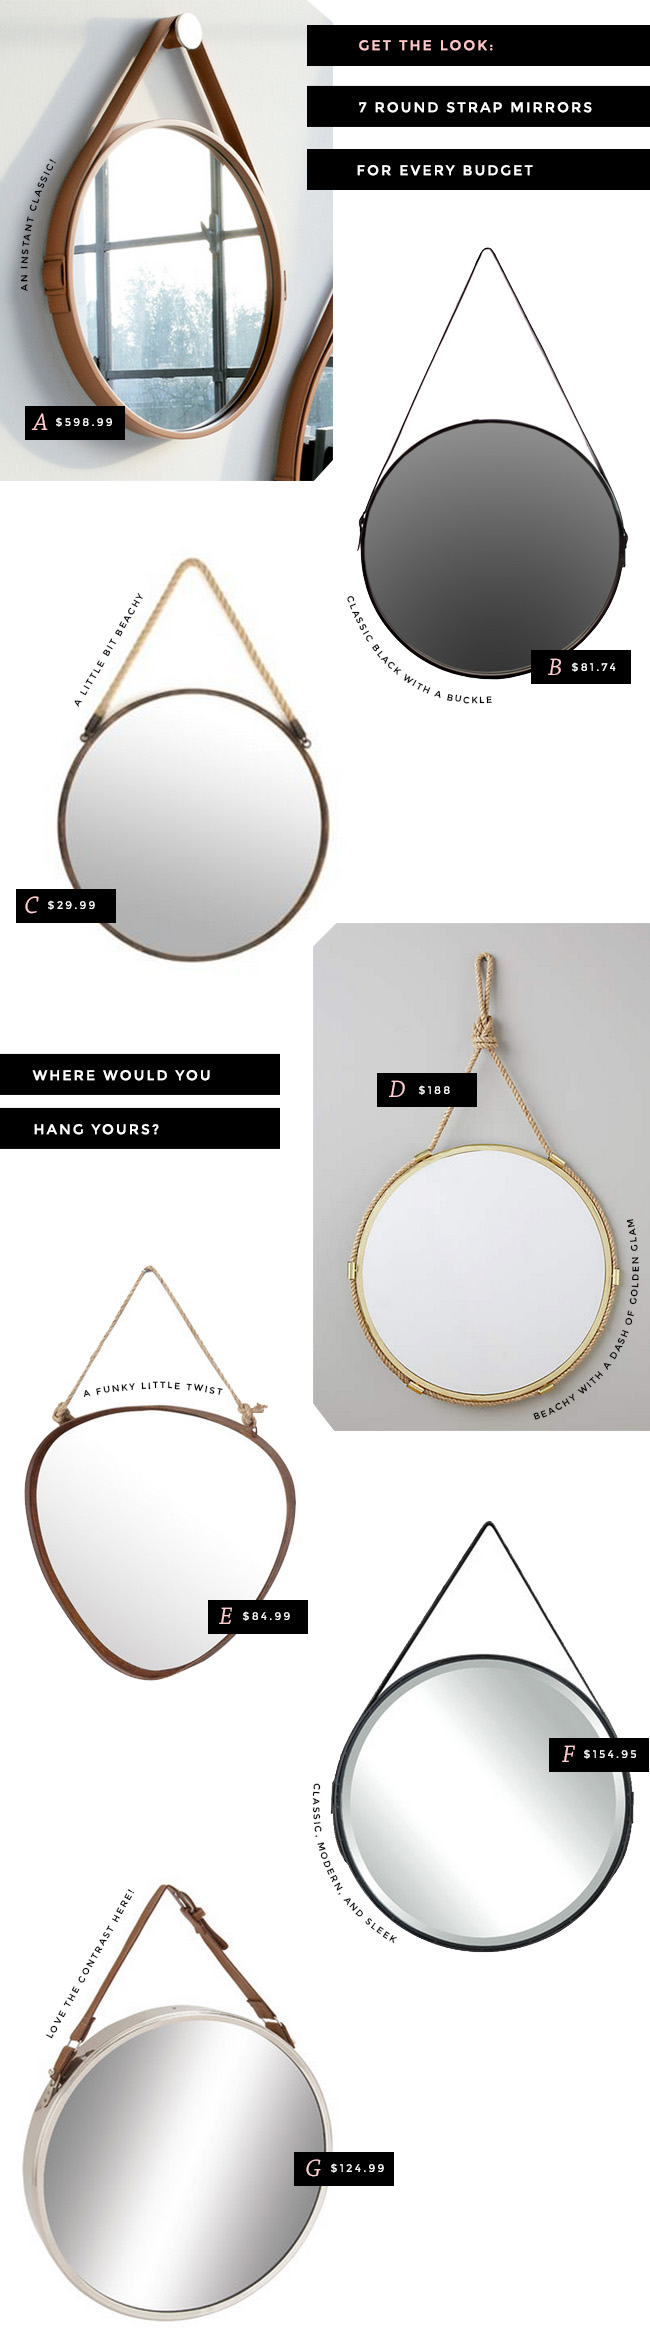 round mirrors with straps